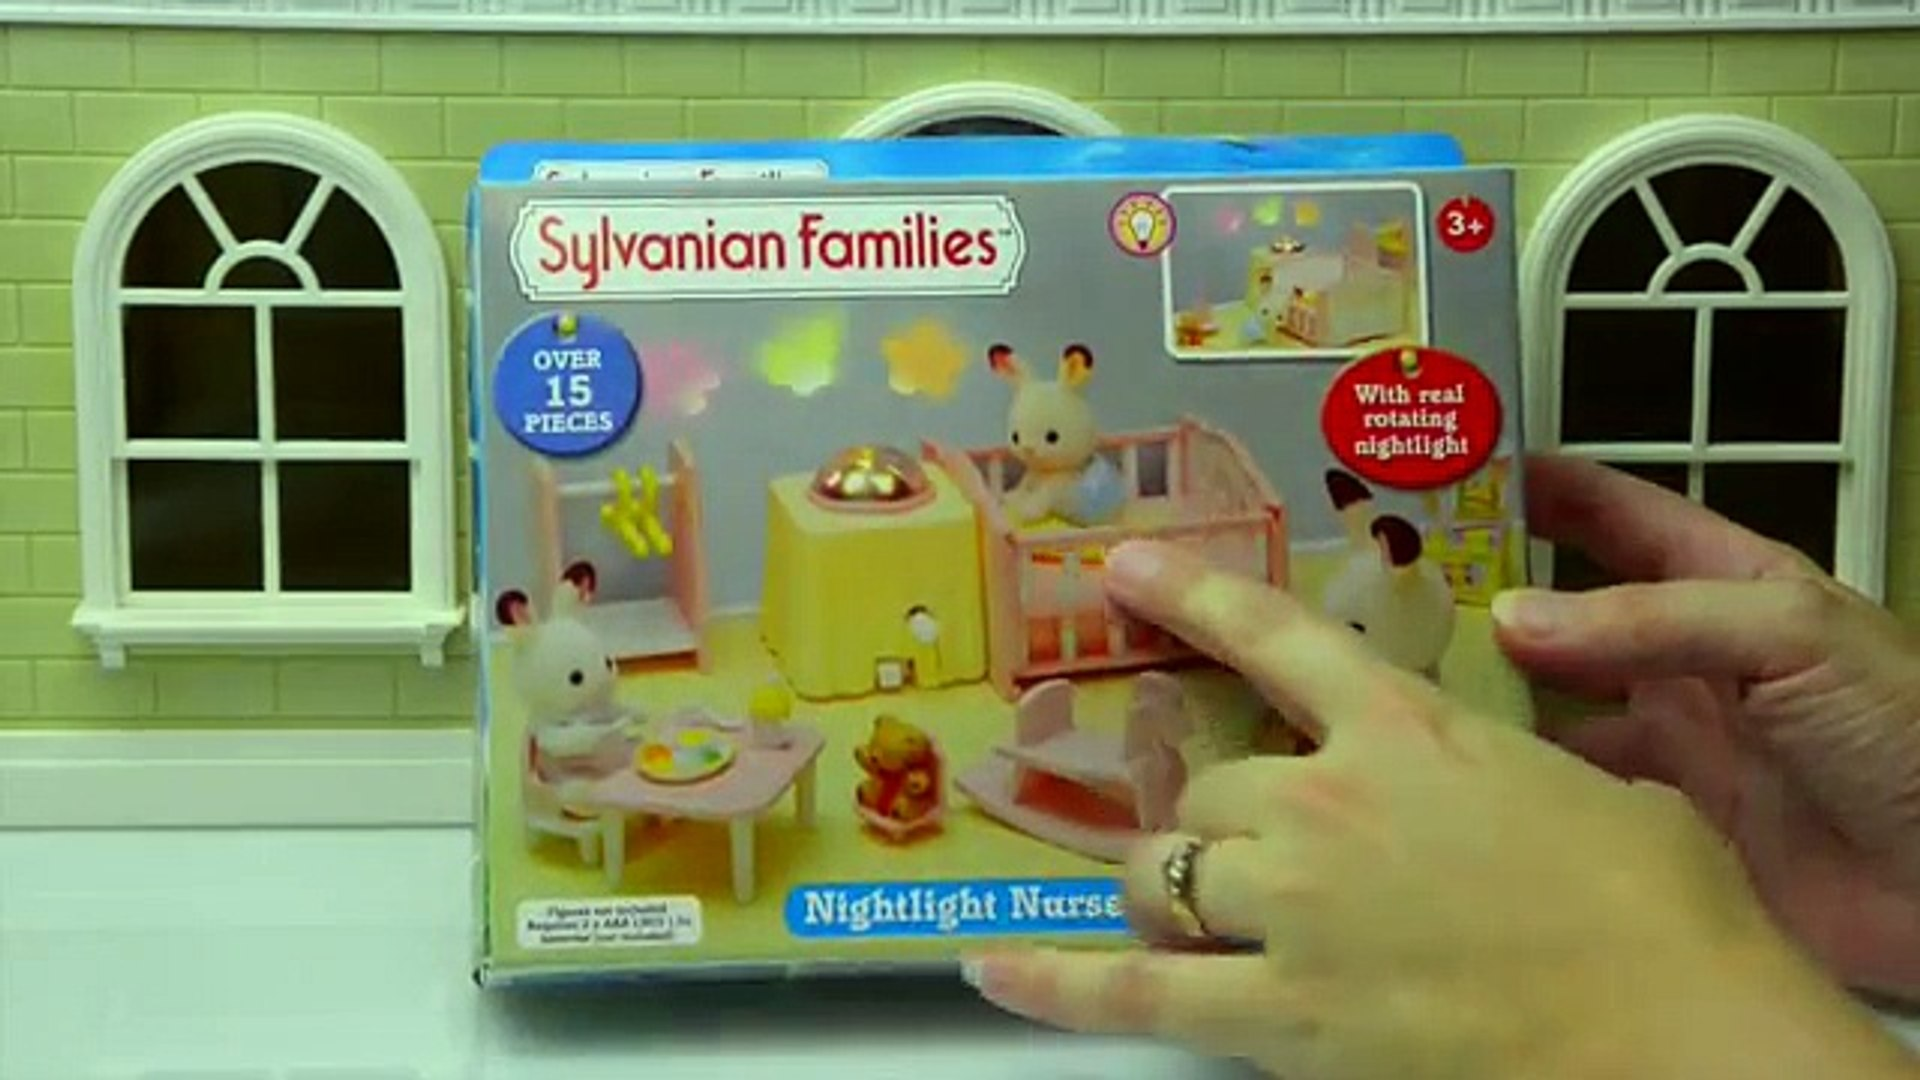 Sylvanian Families Calico Critters Nightlight Nursery Set Unboxing Set Up Cloverleaf Manor Toys Video Dailymotion